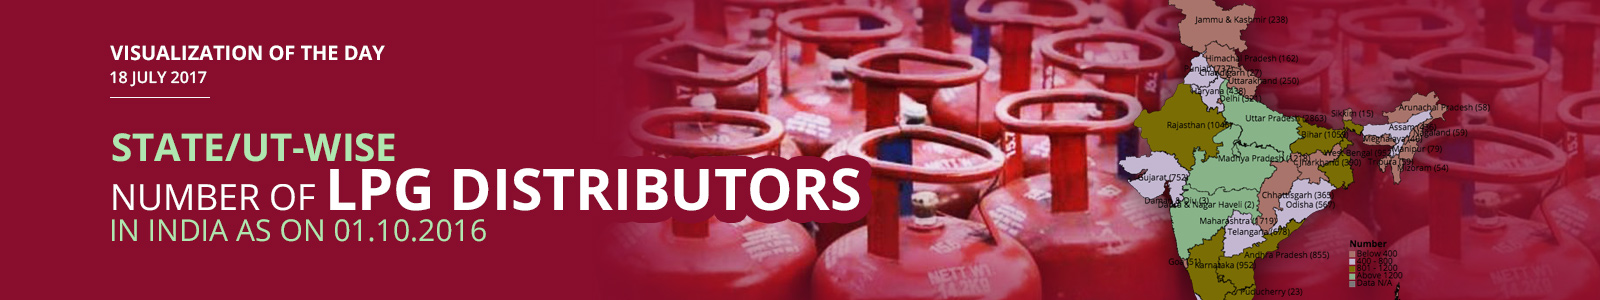 State/UT-wise number of LPG Distributors in India as on